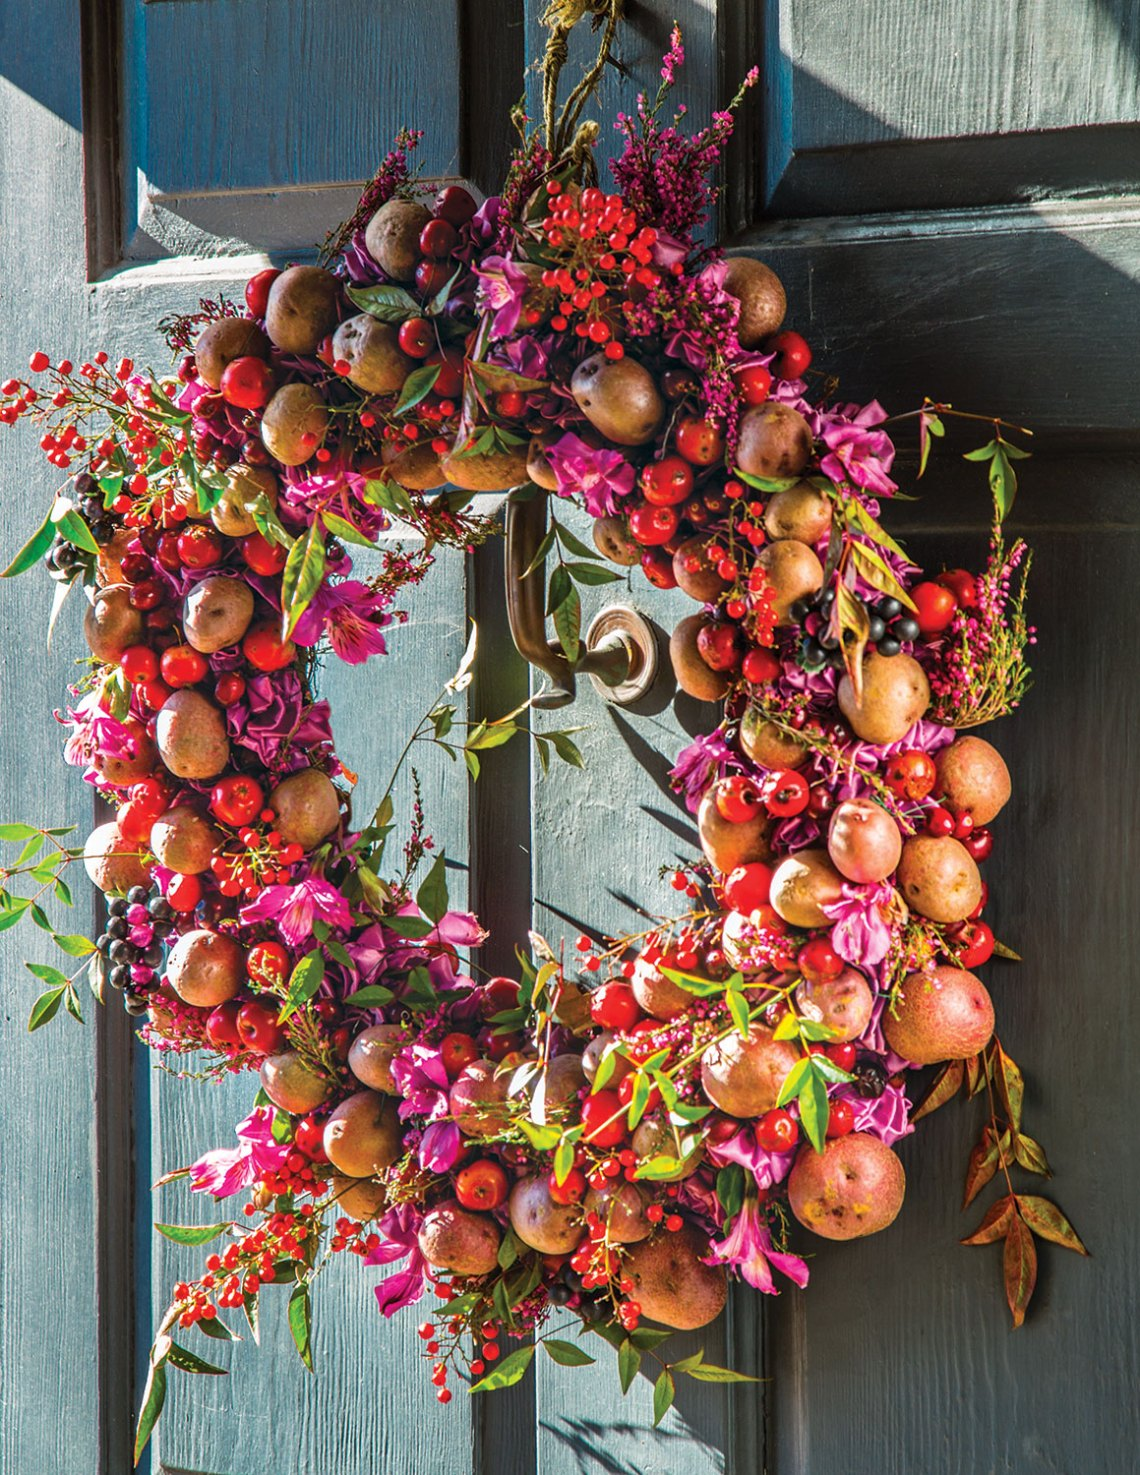 laura dowling, potato wreath